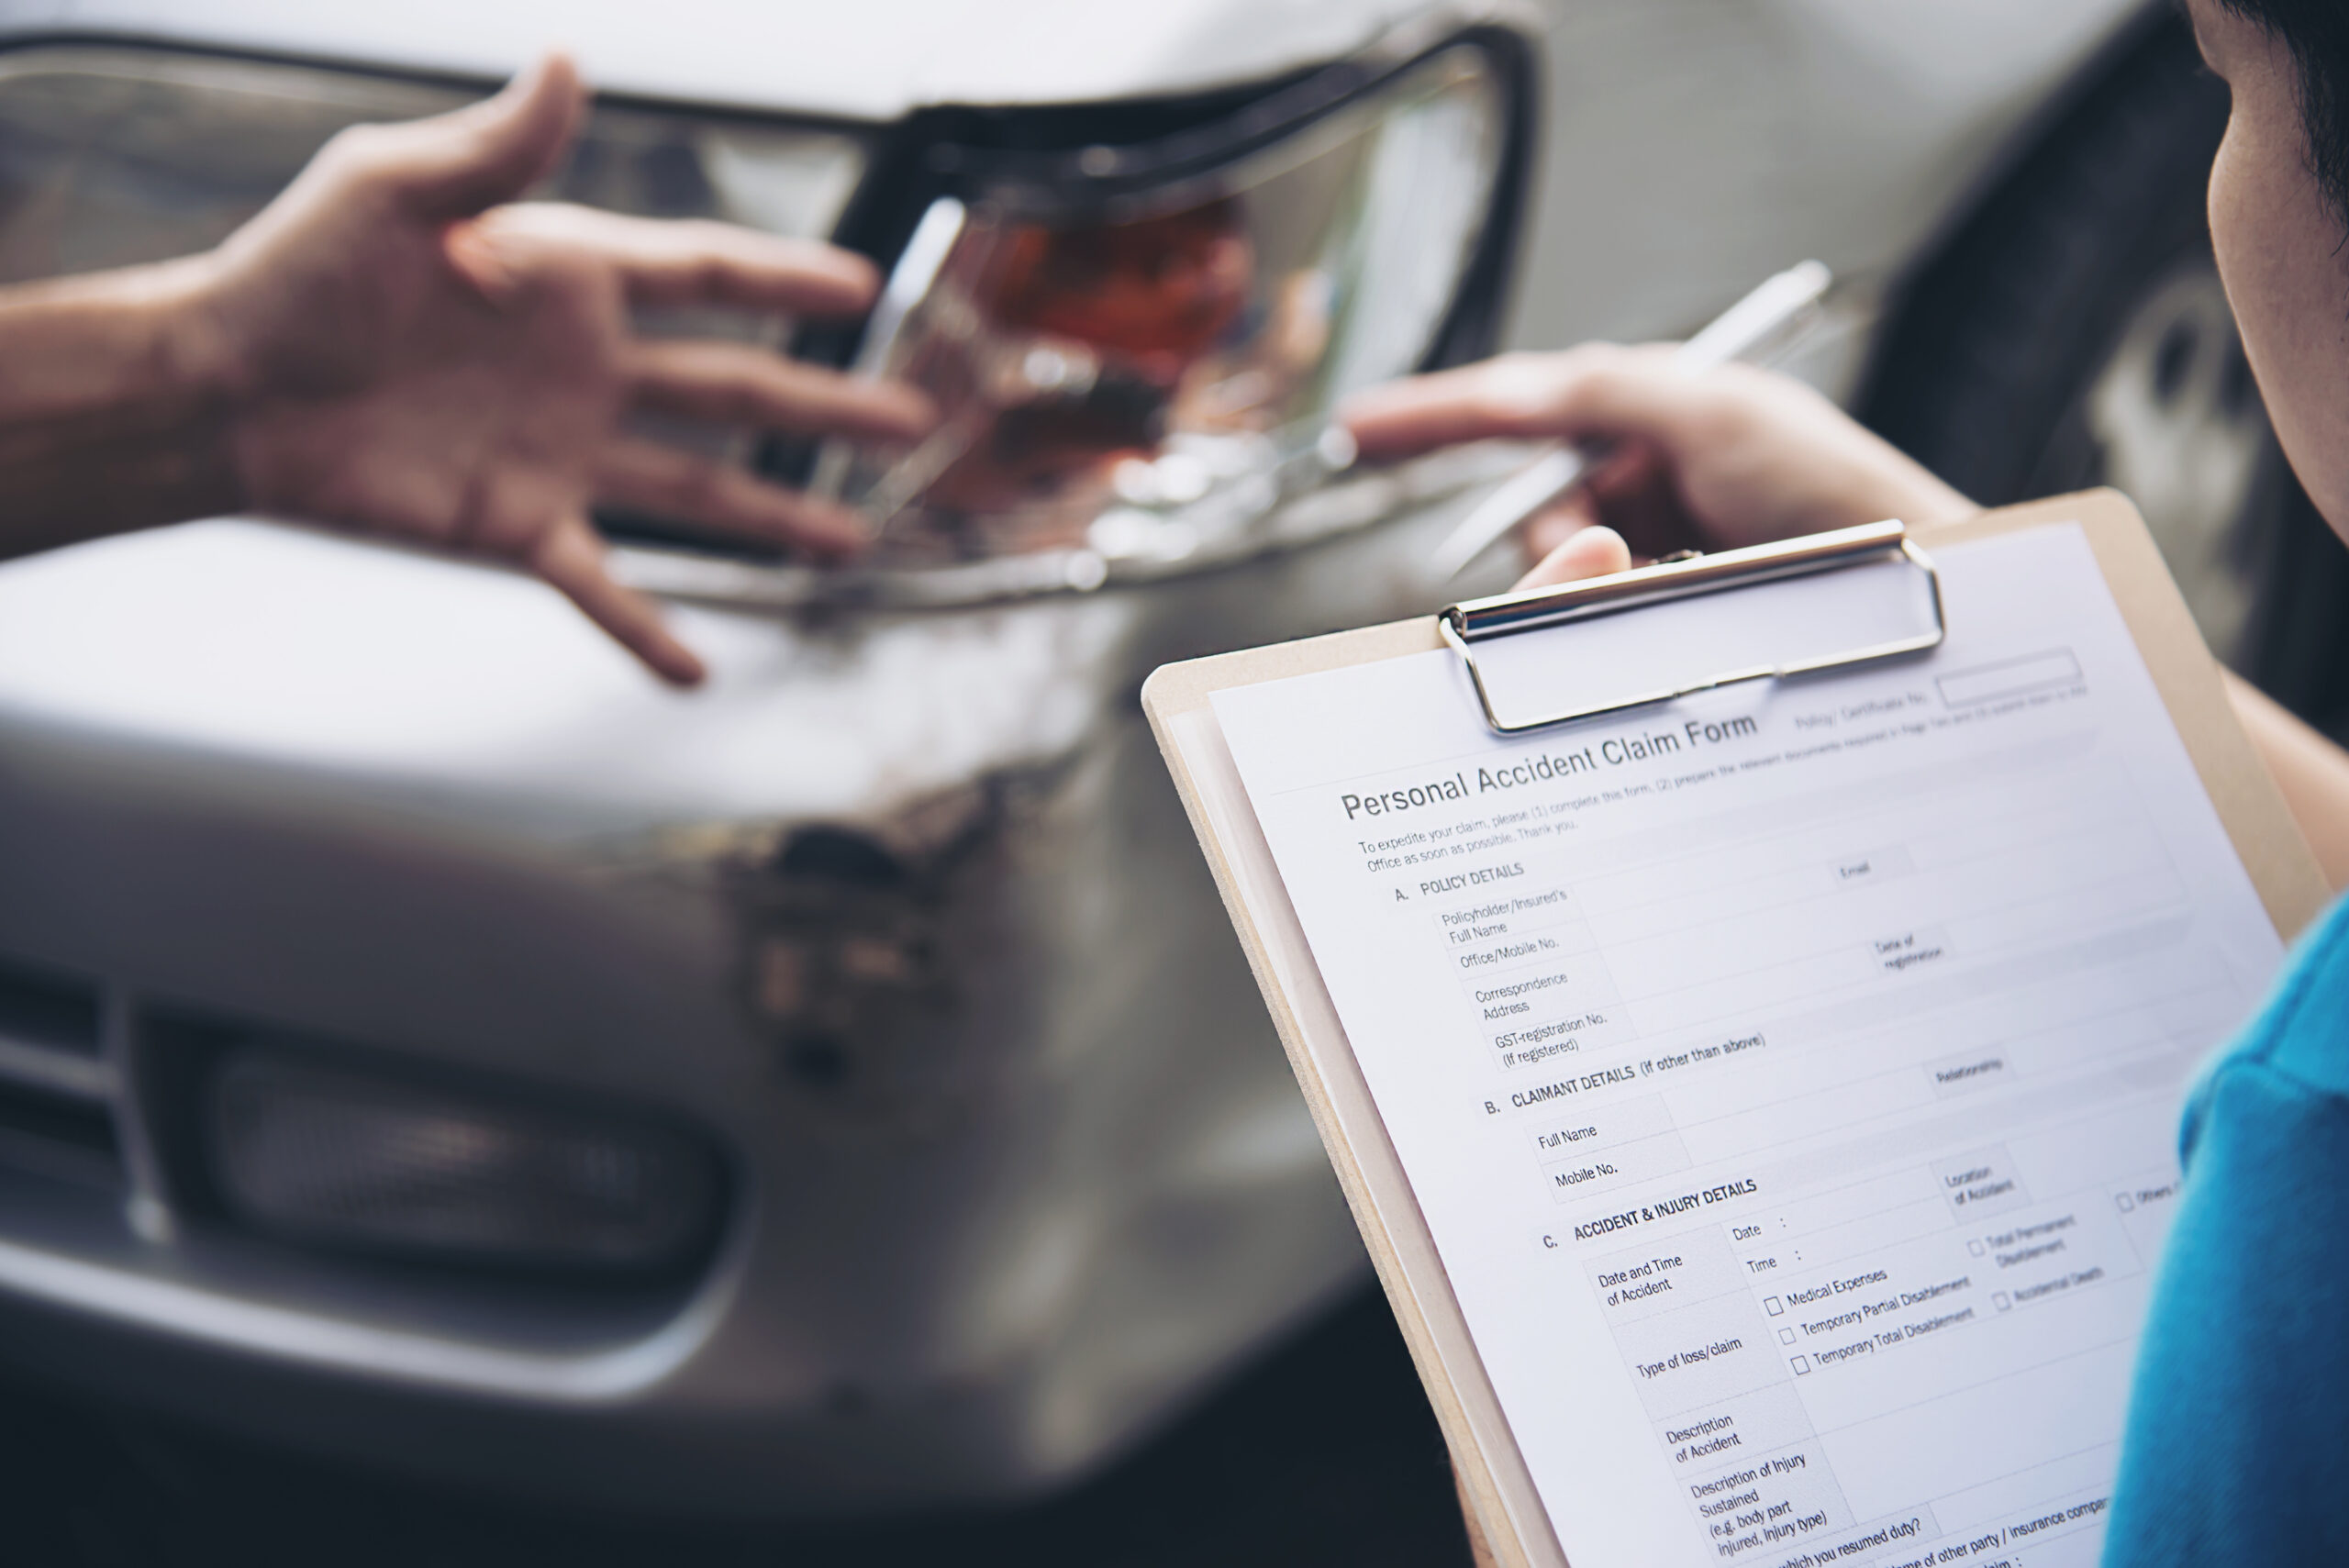 Insurtech Story: How DriveX Helps Insurers with AI-assisted Vehicle Verification